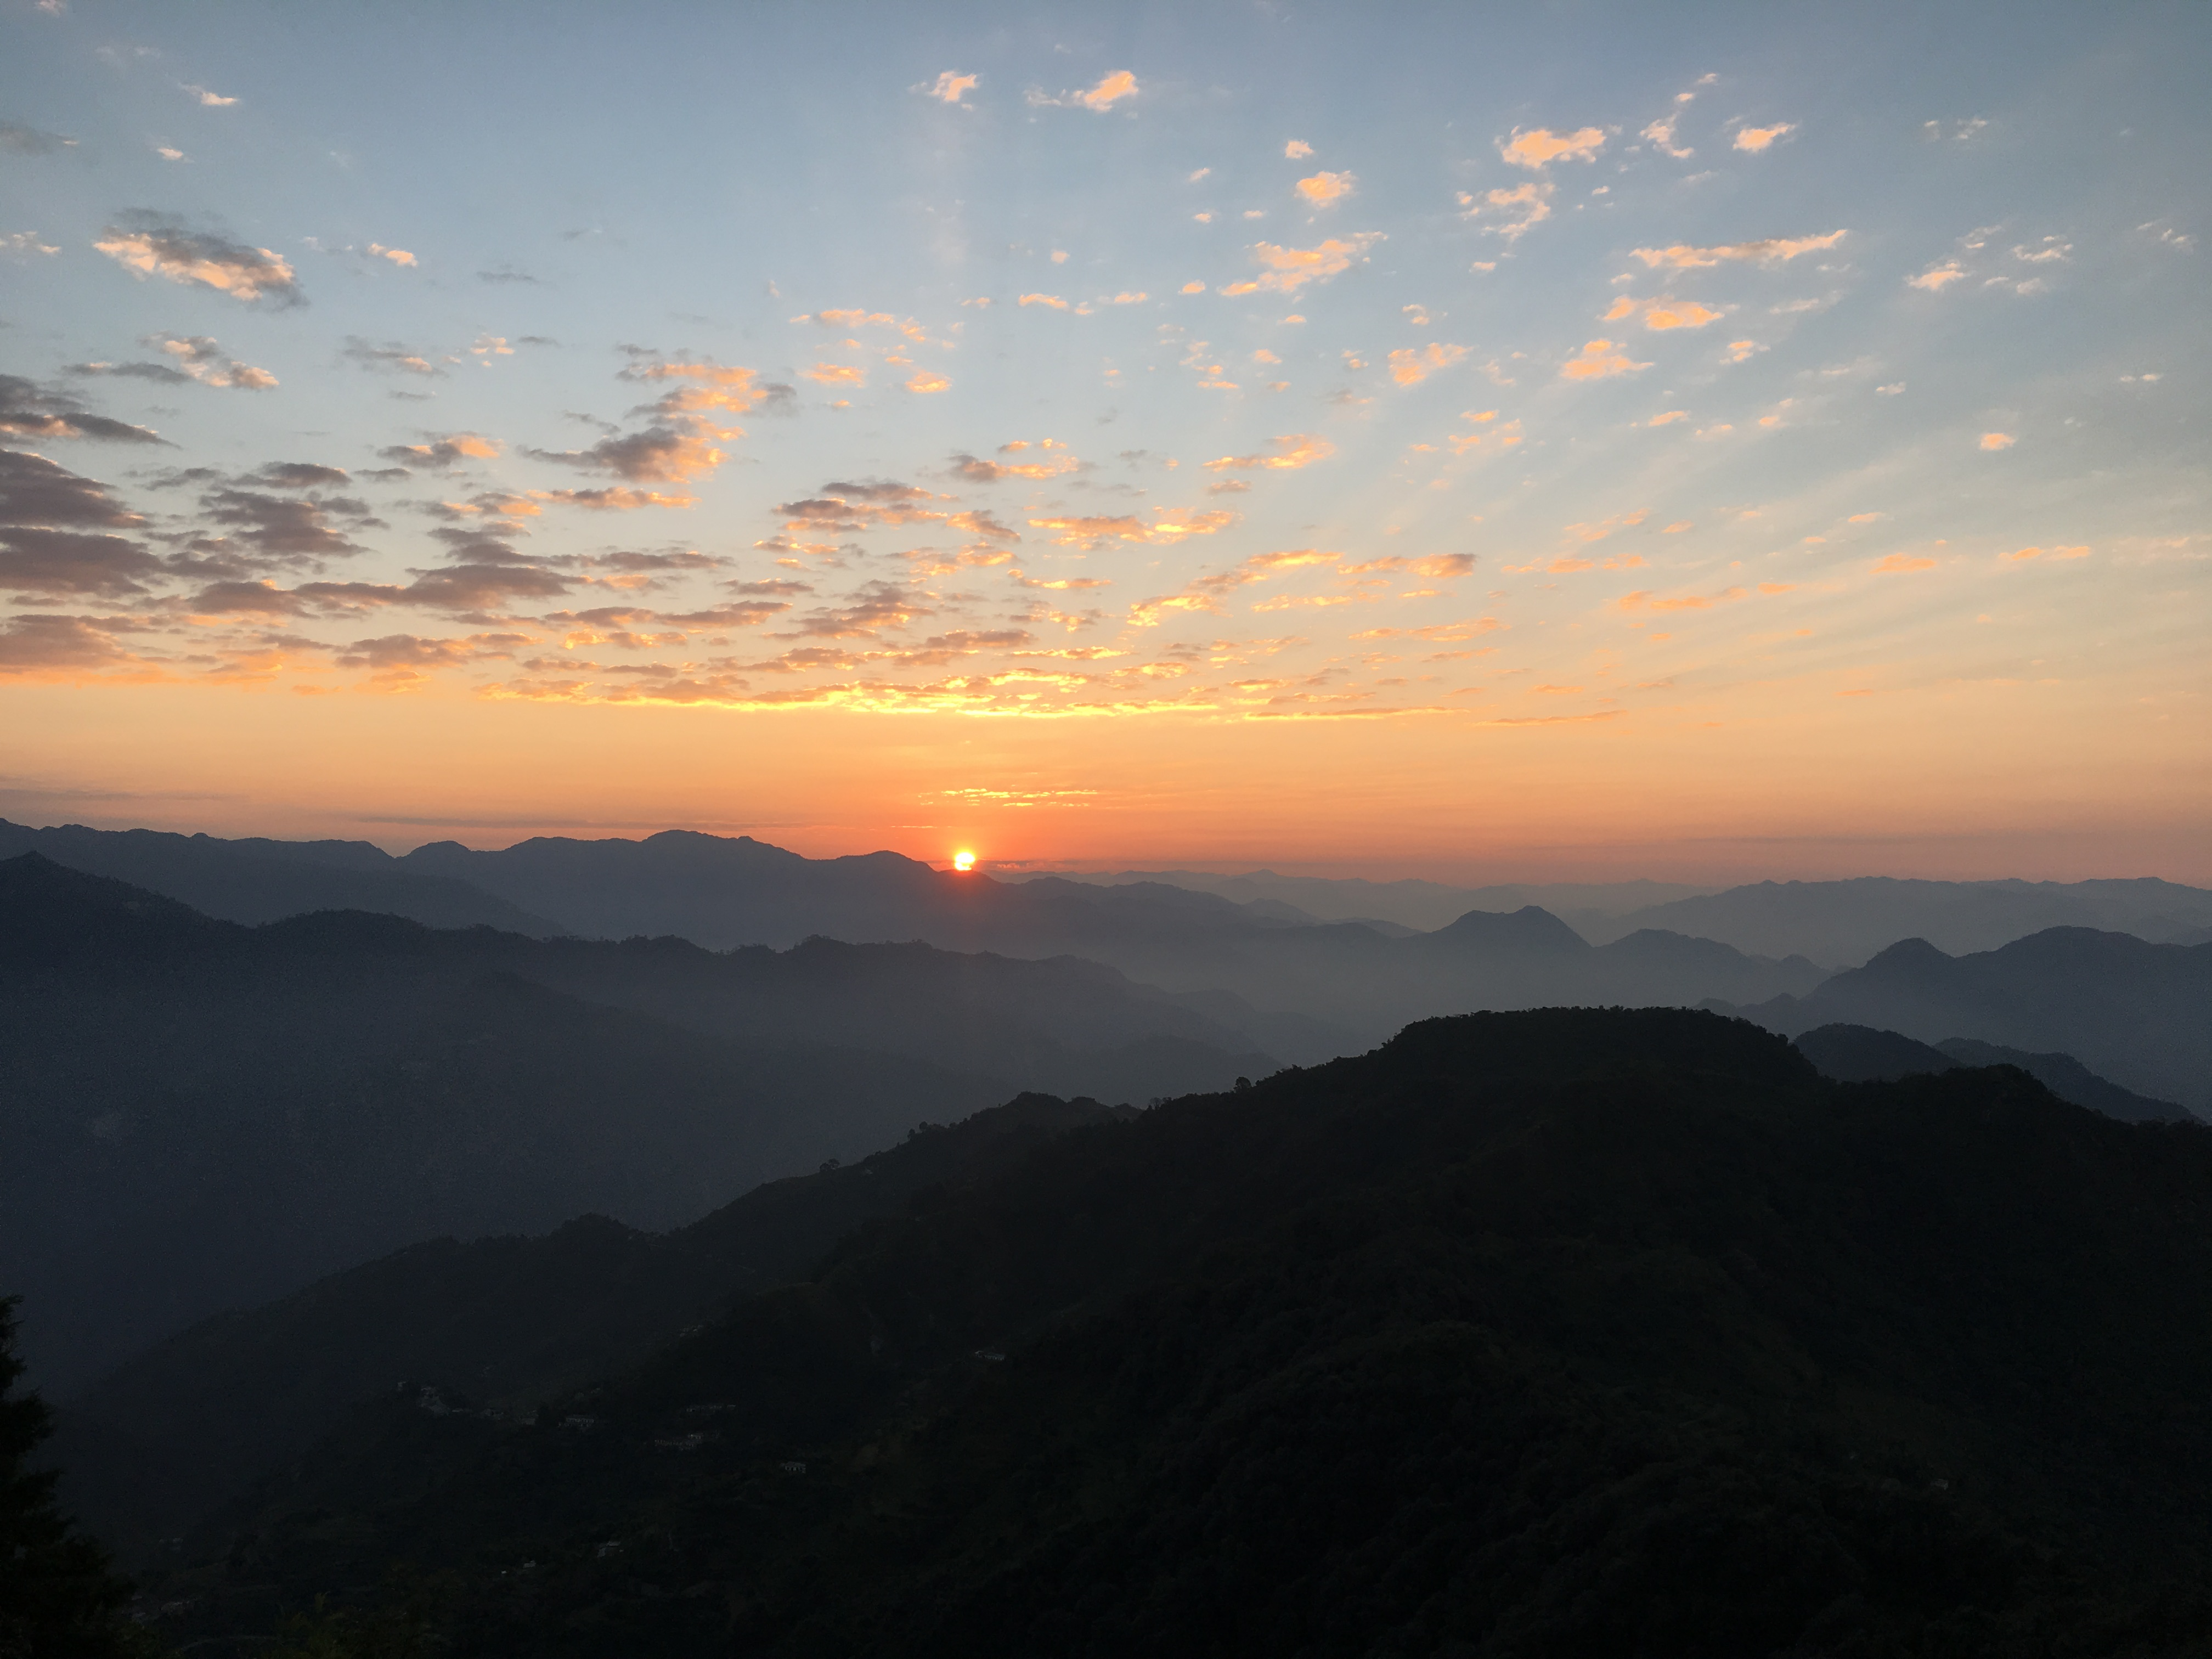 The sun rising over the Himalayas